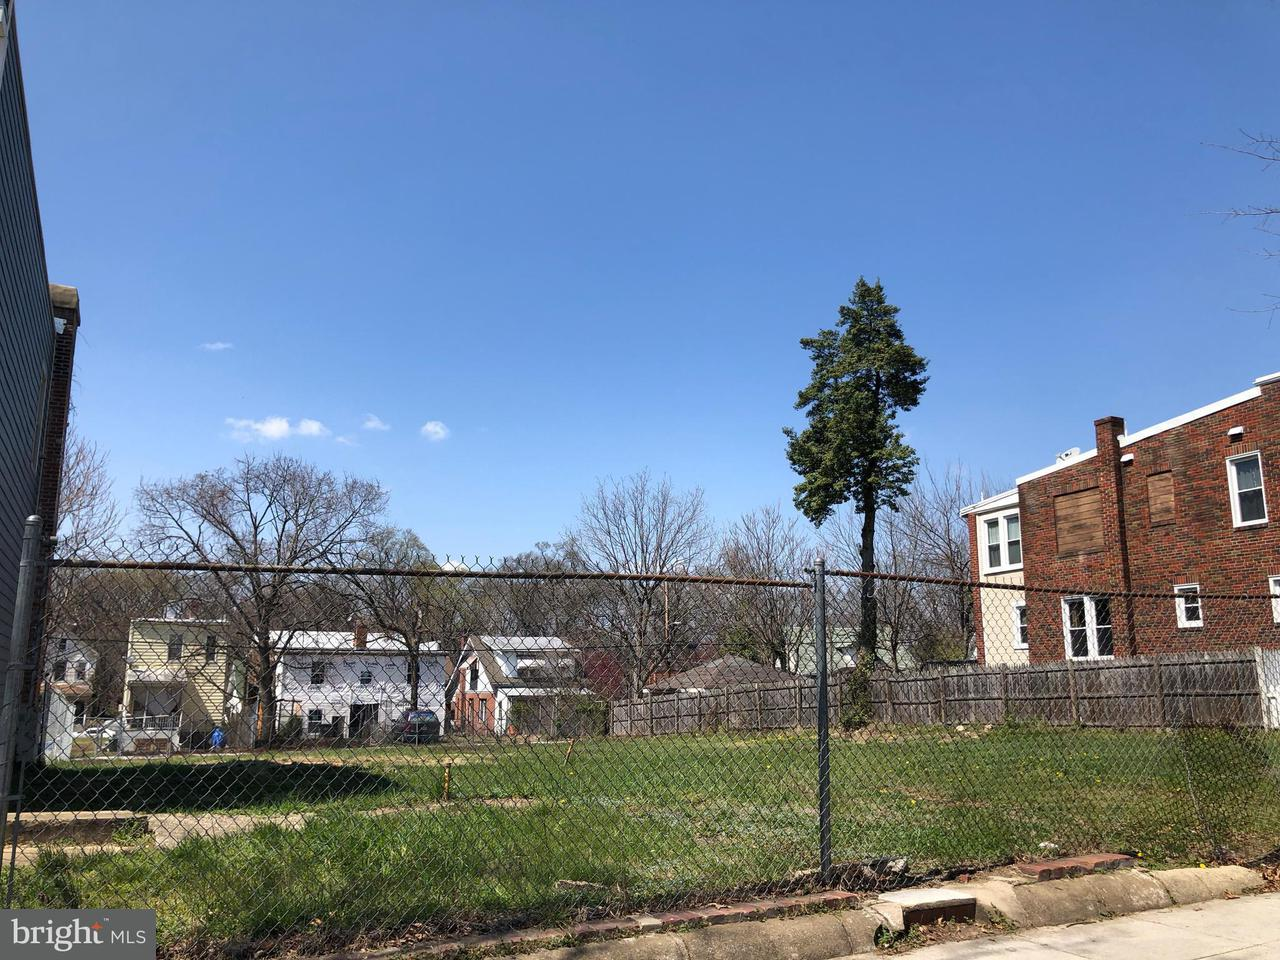 Land for Sale at 3339 Martin Luther King Jr Ave SE Washington, District Of Columbia 20032 United States